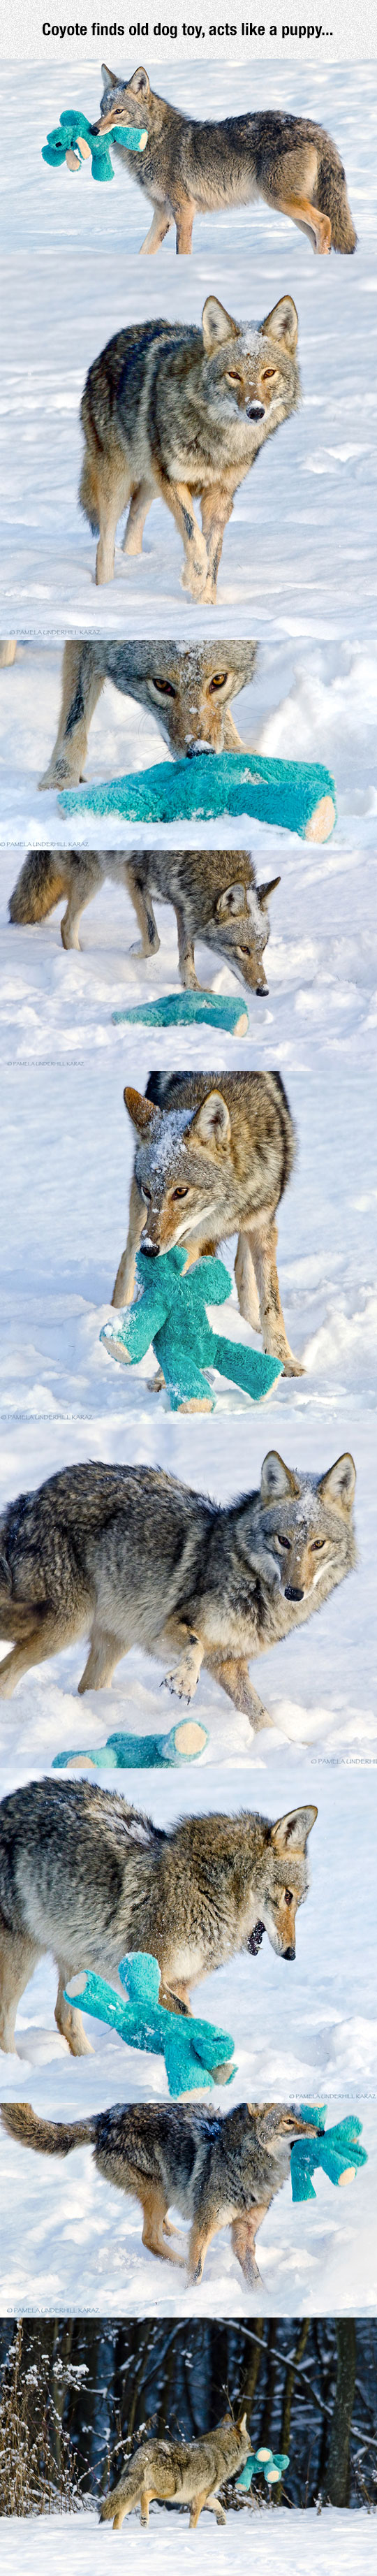 cool-coyote-playing-dog-toy-snow